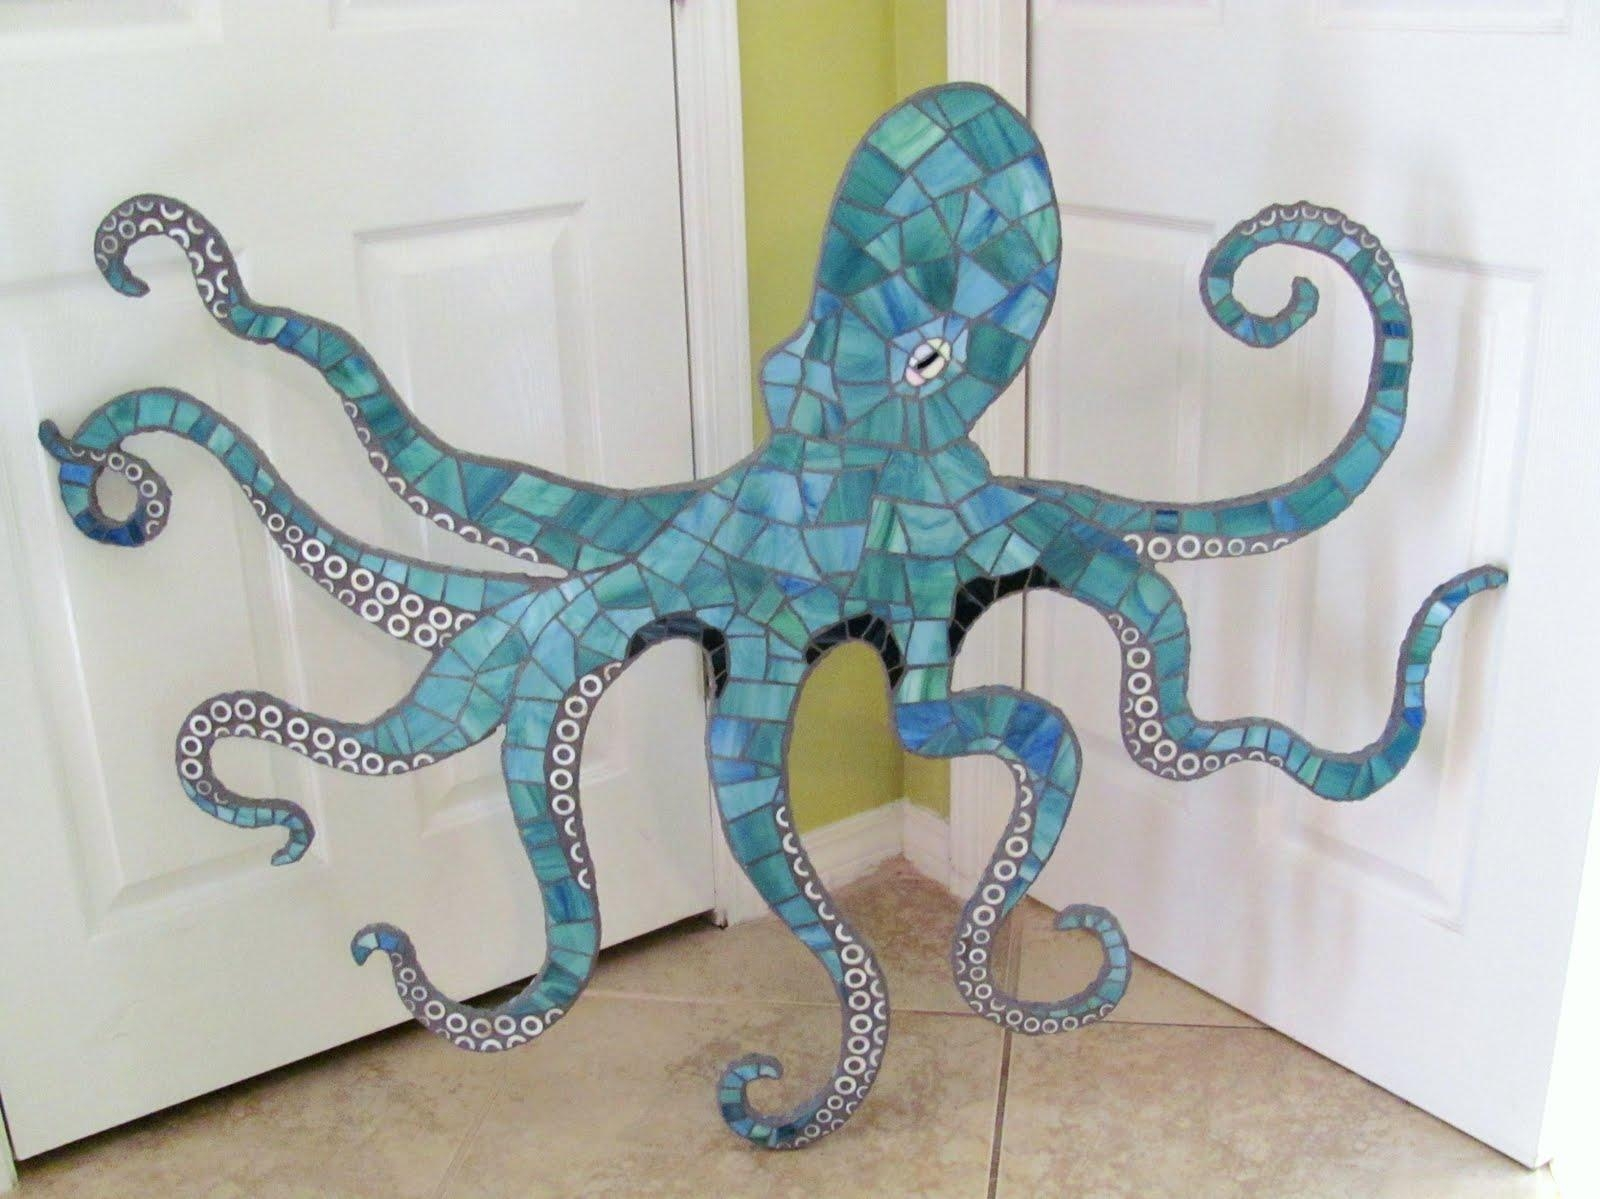 Octopus Mosaic Wall Art, Large 4 Ft Stained Glass Mosaic Octopus In Octopus Tentacle Wall Art (View 11 of 20)